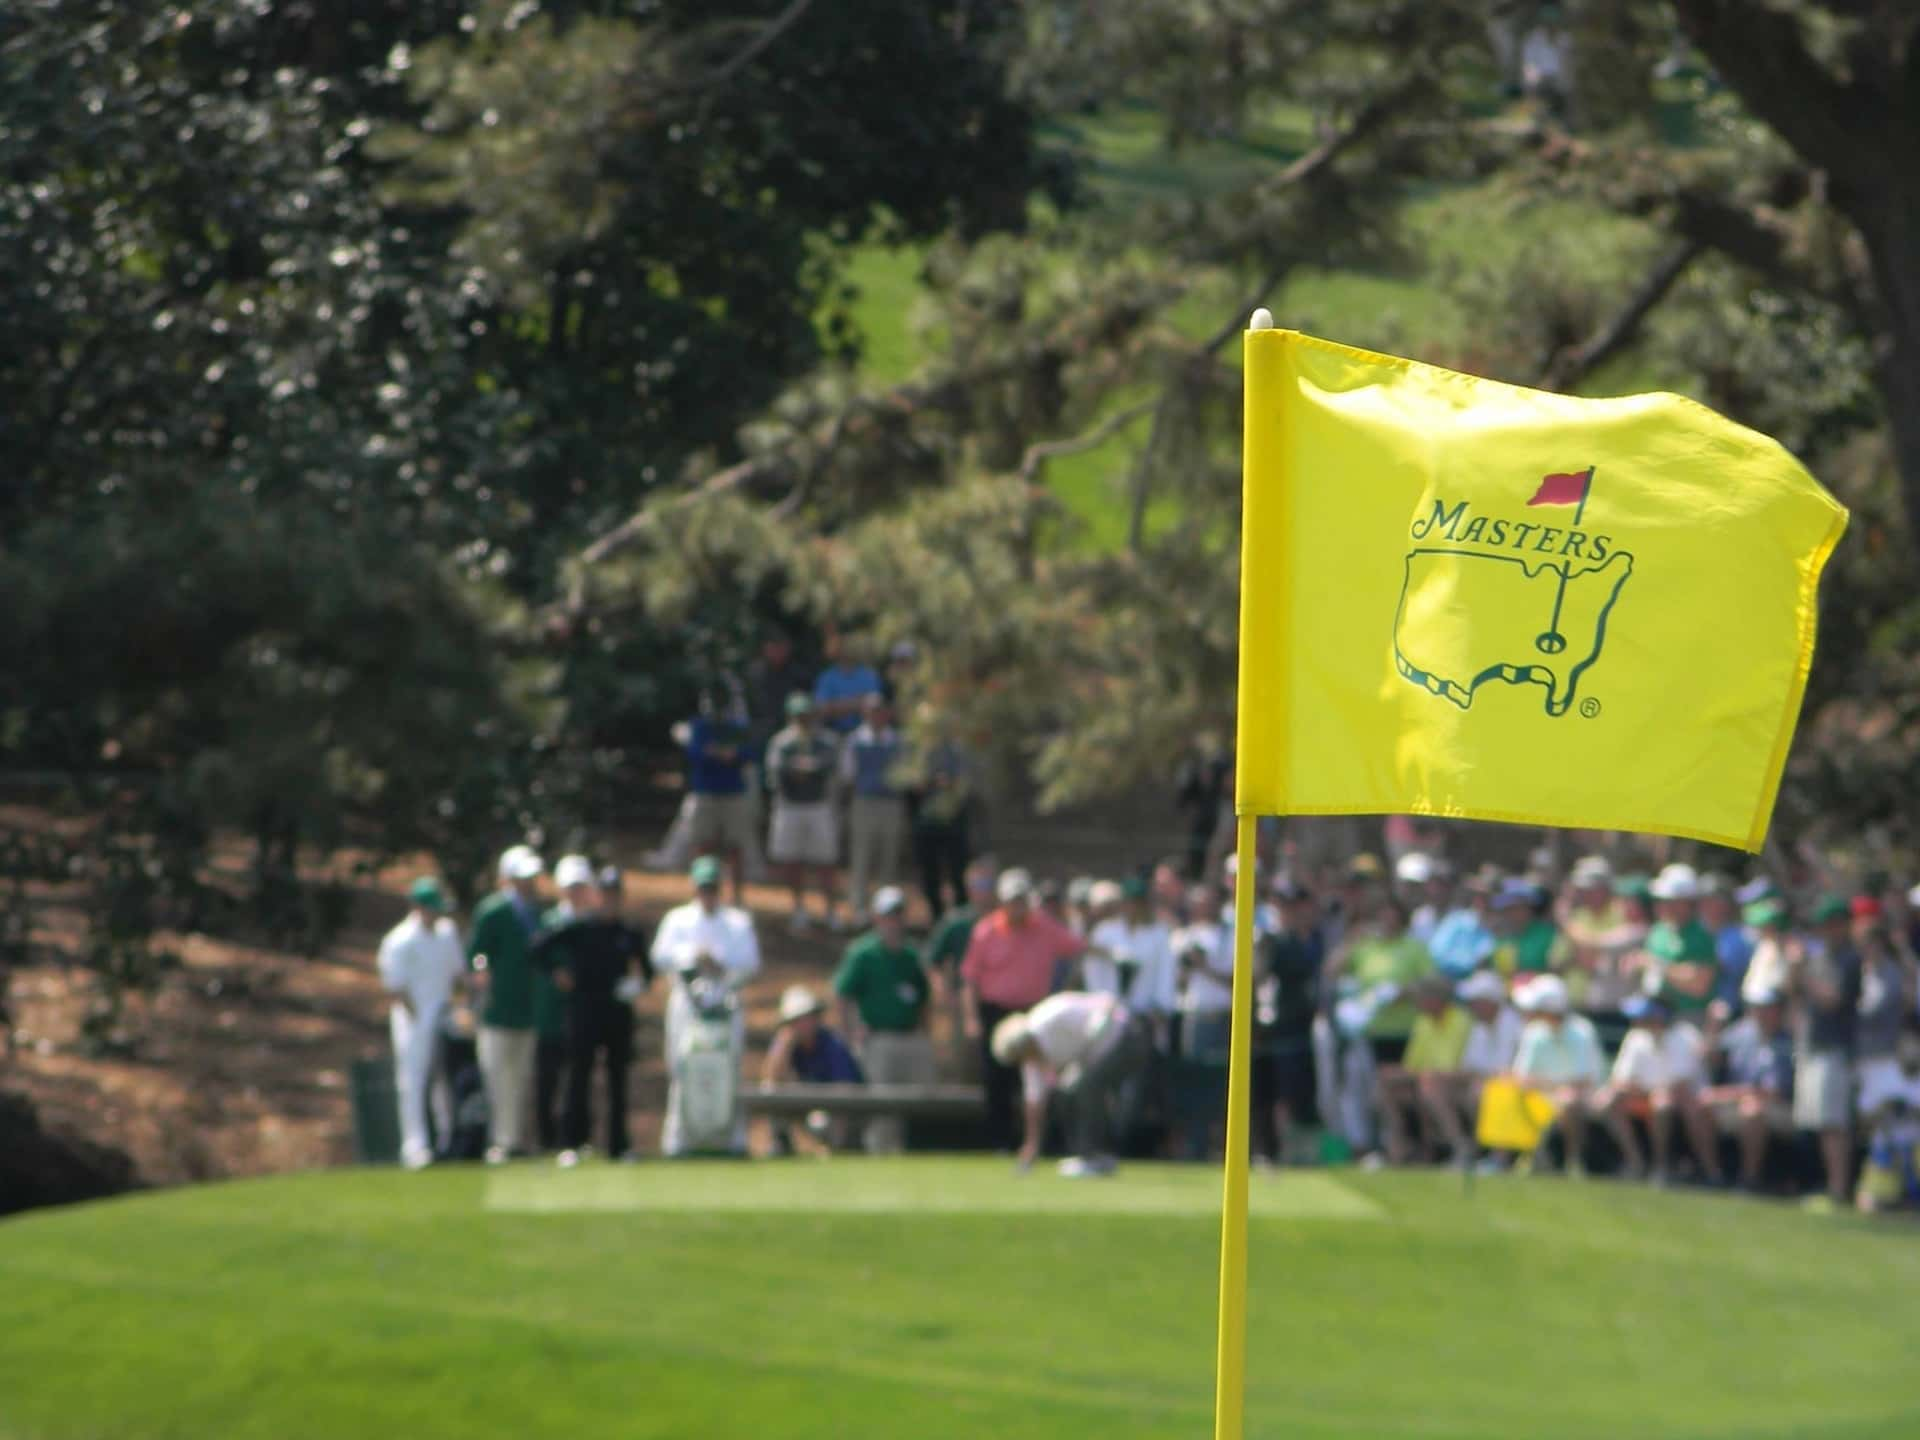 The 7 Mental Traits Of The Masters Champion